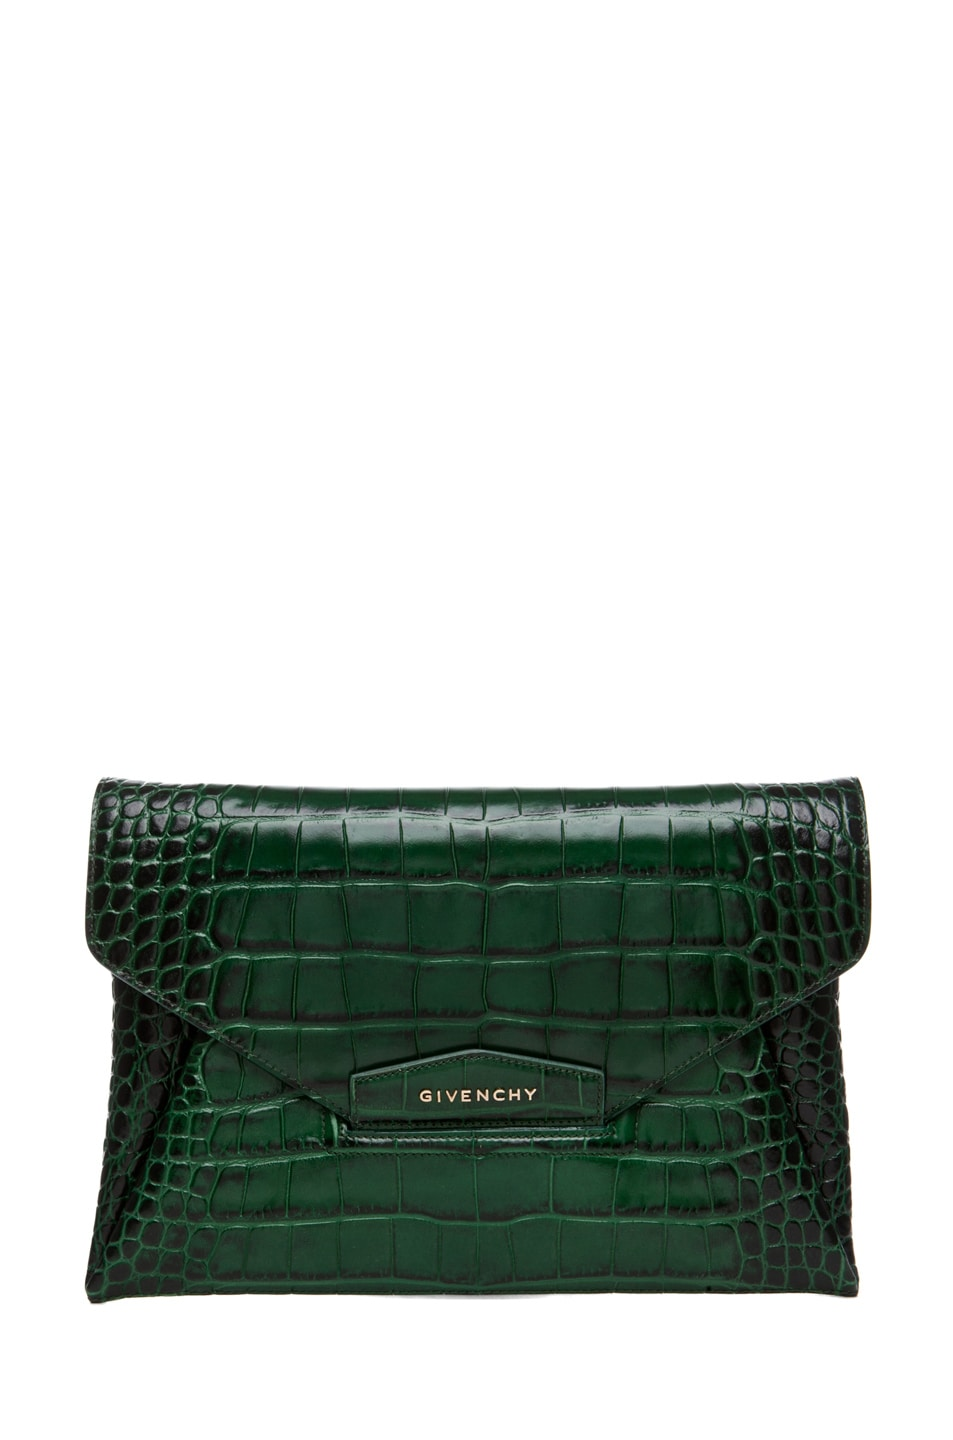 Image 1 of GIVENCHY Anitgona Croc Envelope Clutch in Emerald Green